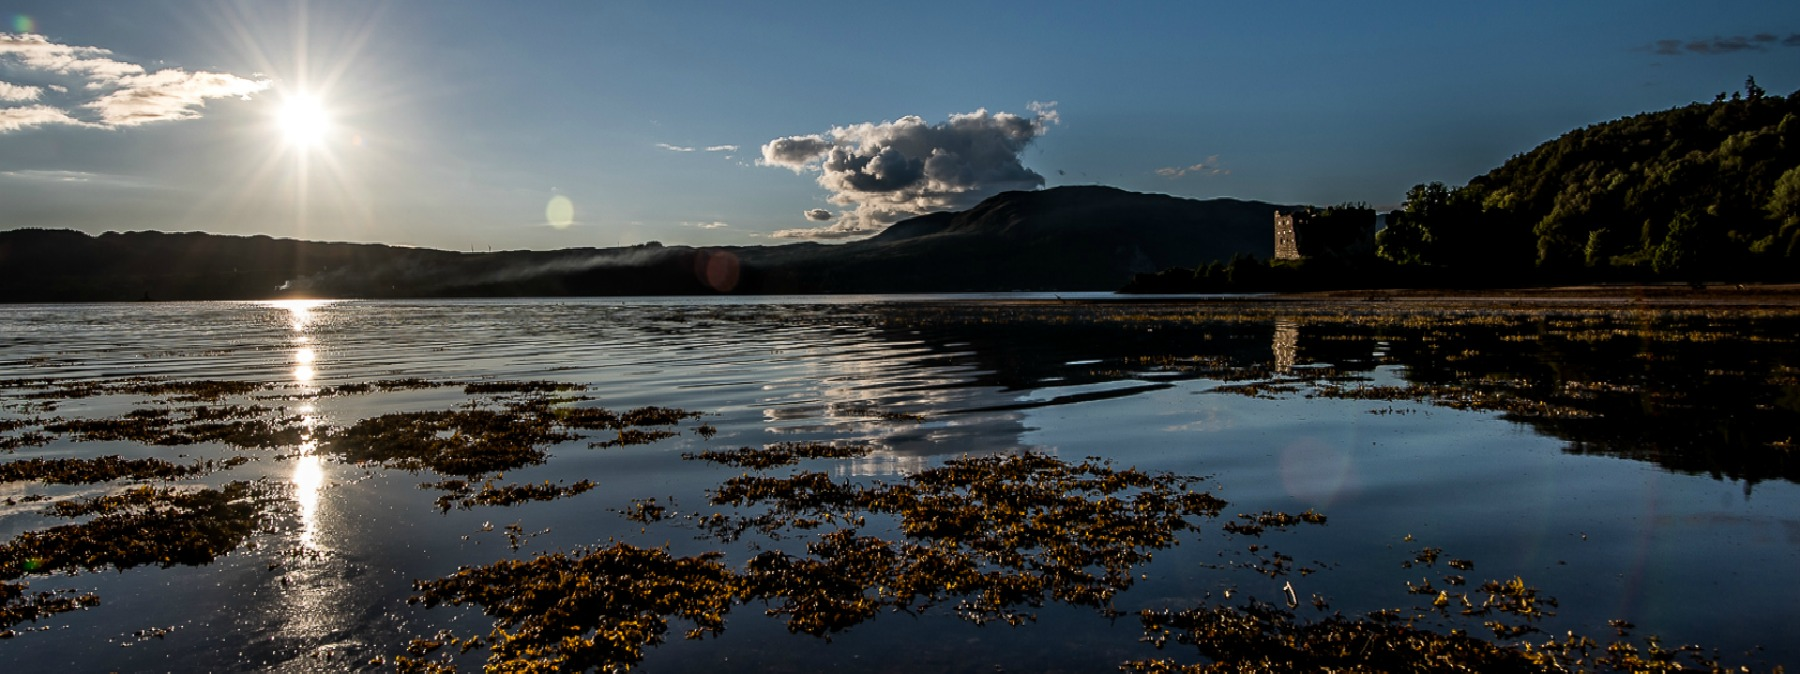 Summer day on Loch Fyne